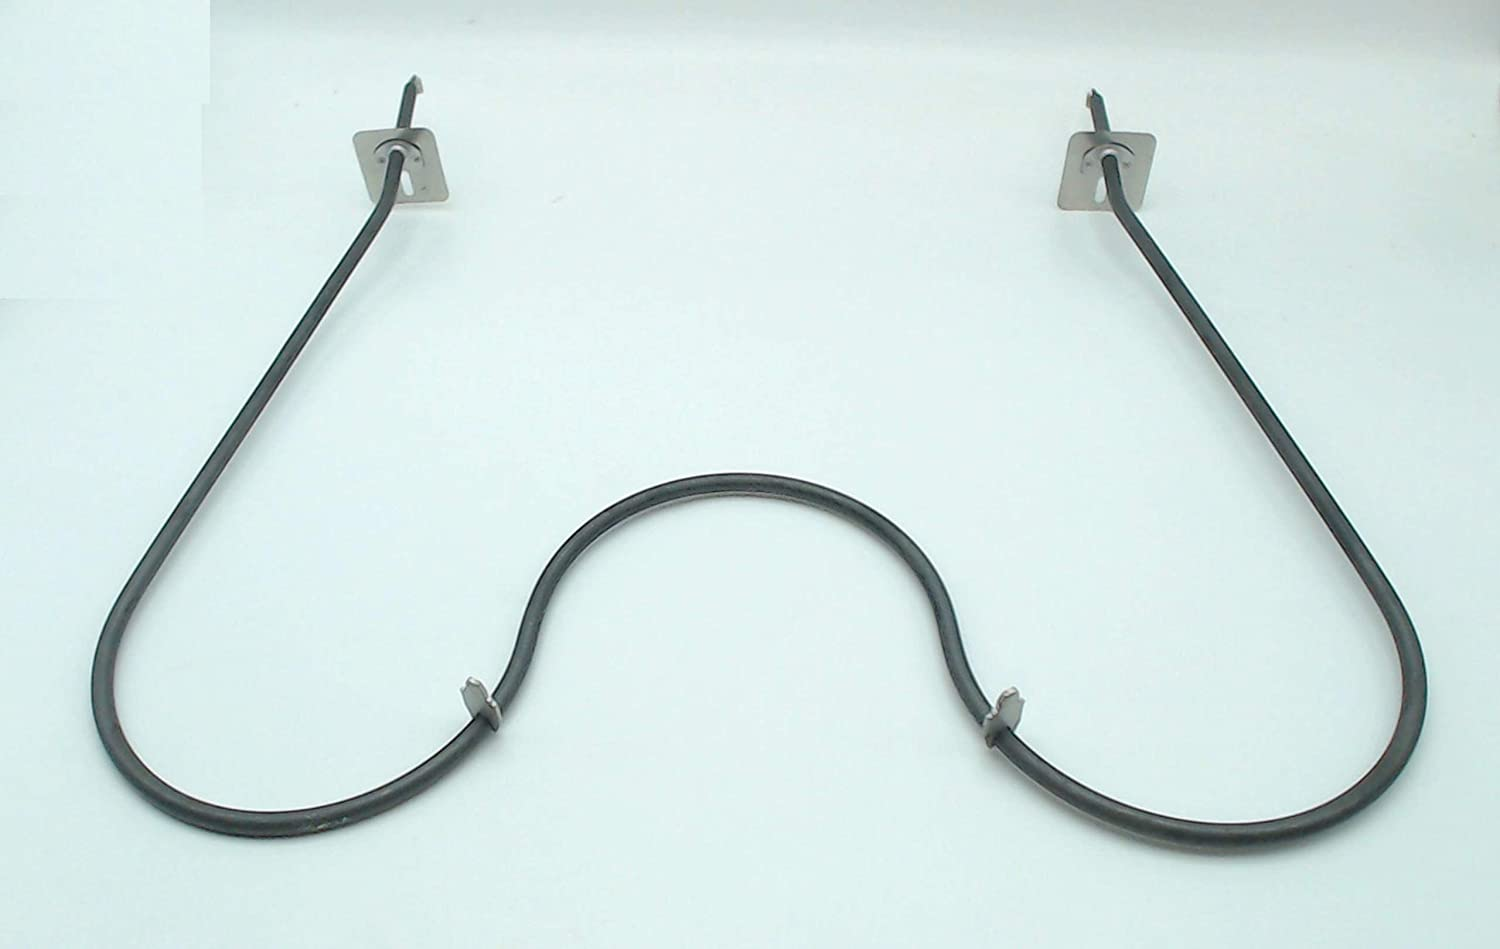 CH5828 Bake Element Compatible With Frigidaire Stove Oven Ranges